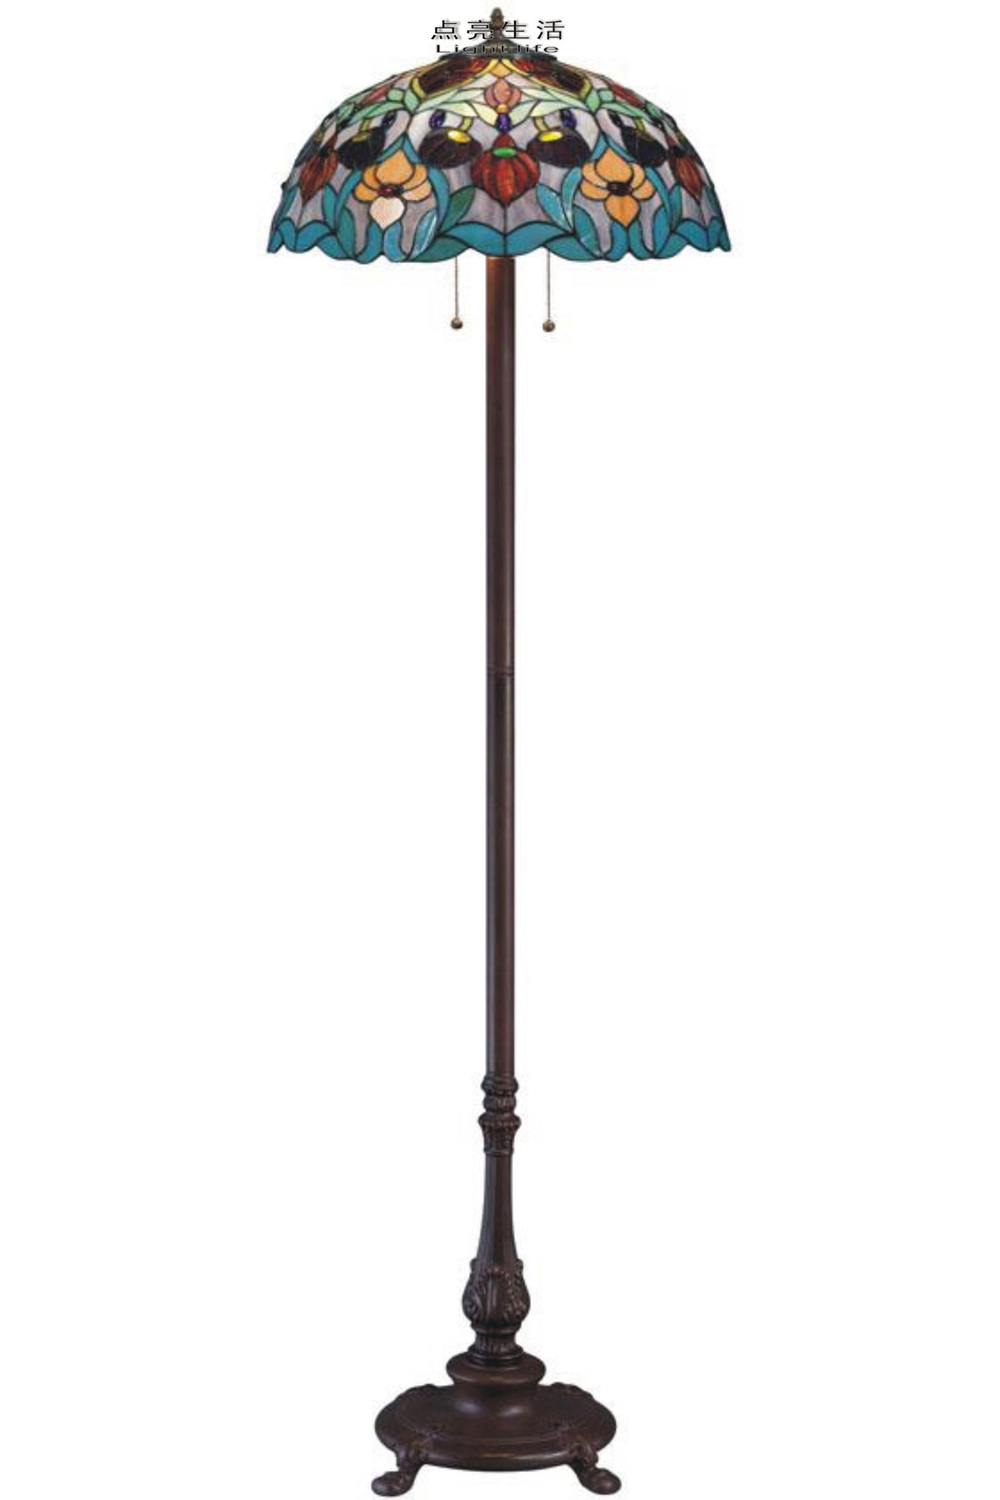 [ Lit life ] European classical Tiffany stained glass floor lamp / Baroque / factory price direct(China (Mainland))